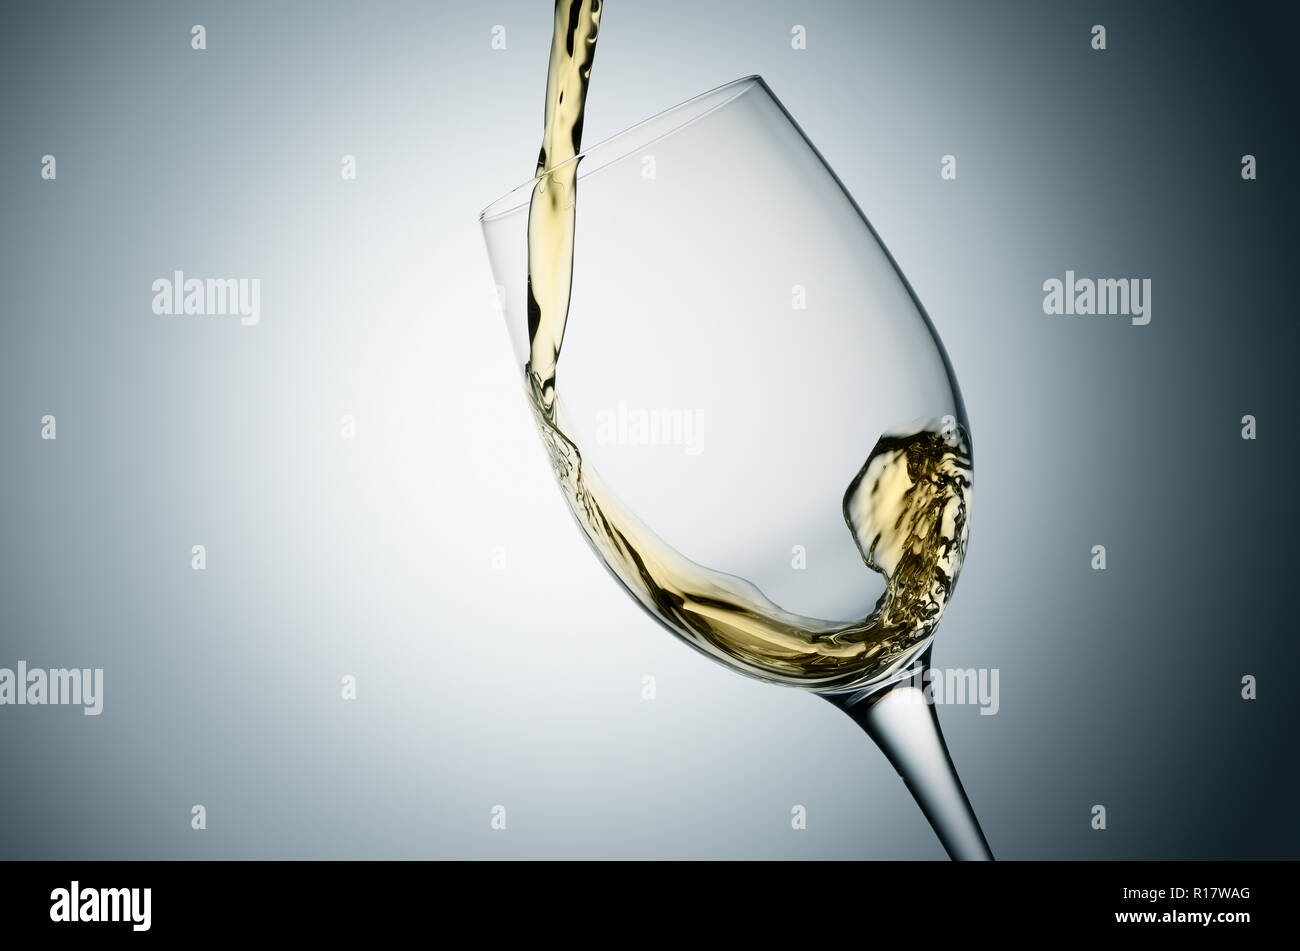 Pouring white wine into tilted glass, plain background - Stock Image